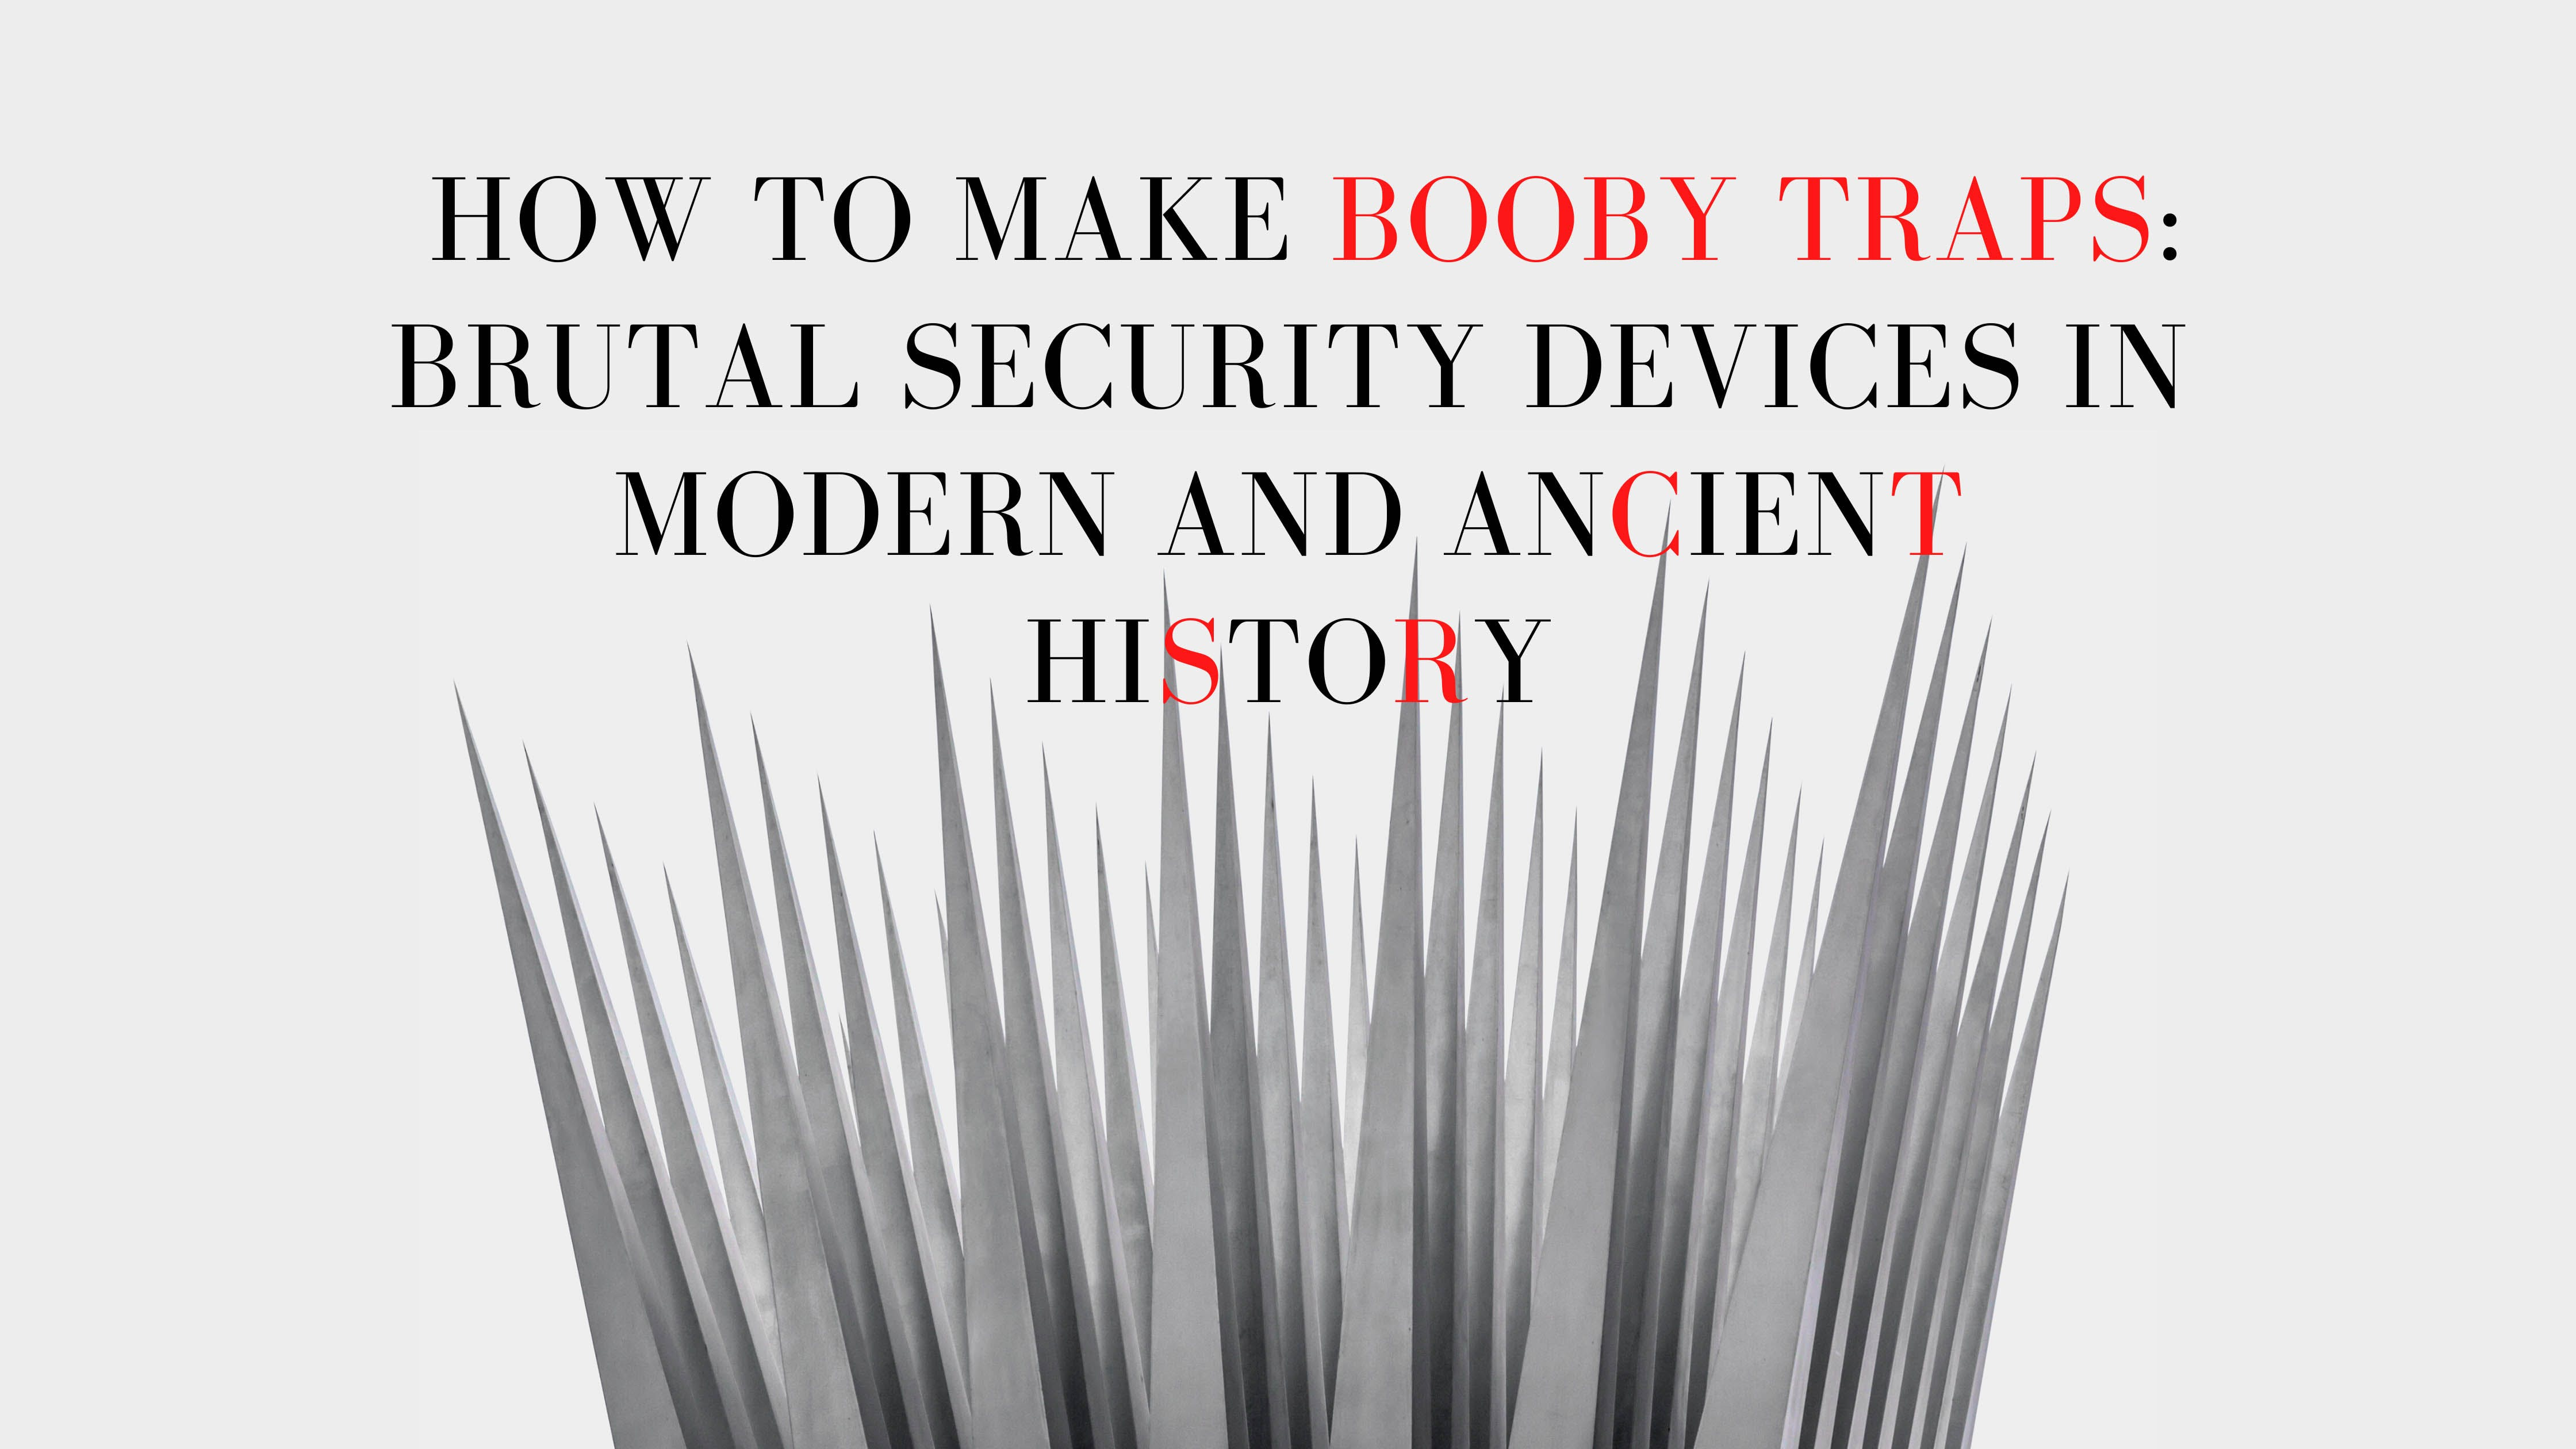 How to Make Booby Traps: Brutal Security Devices in Modern and Ancient History